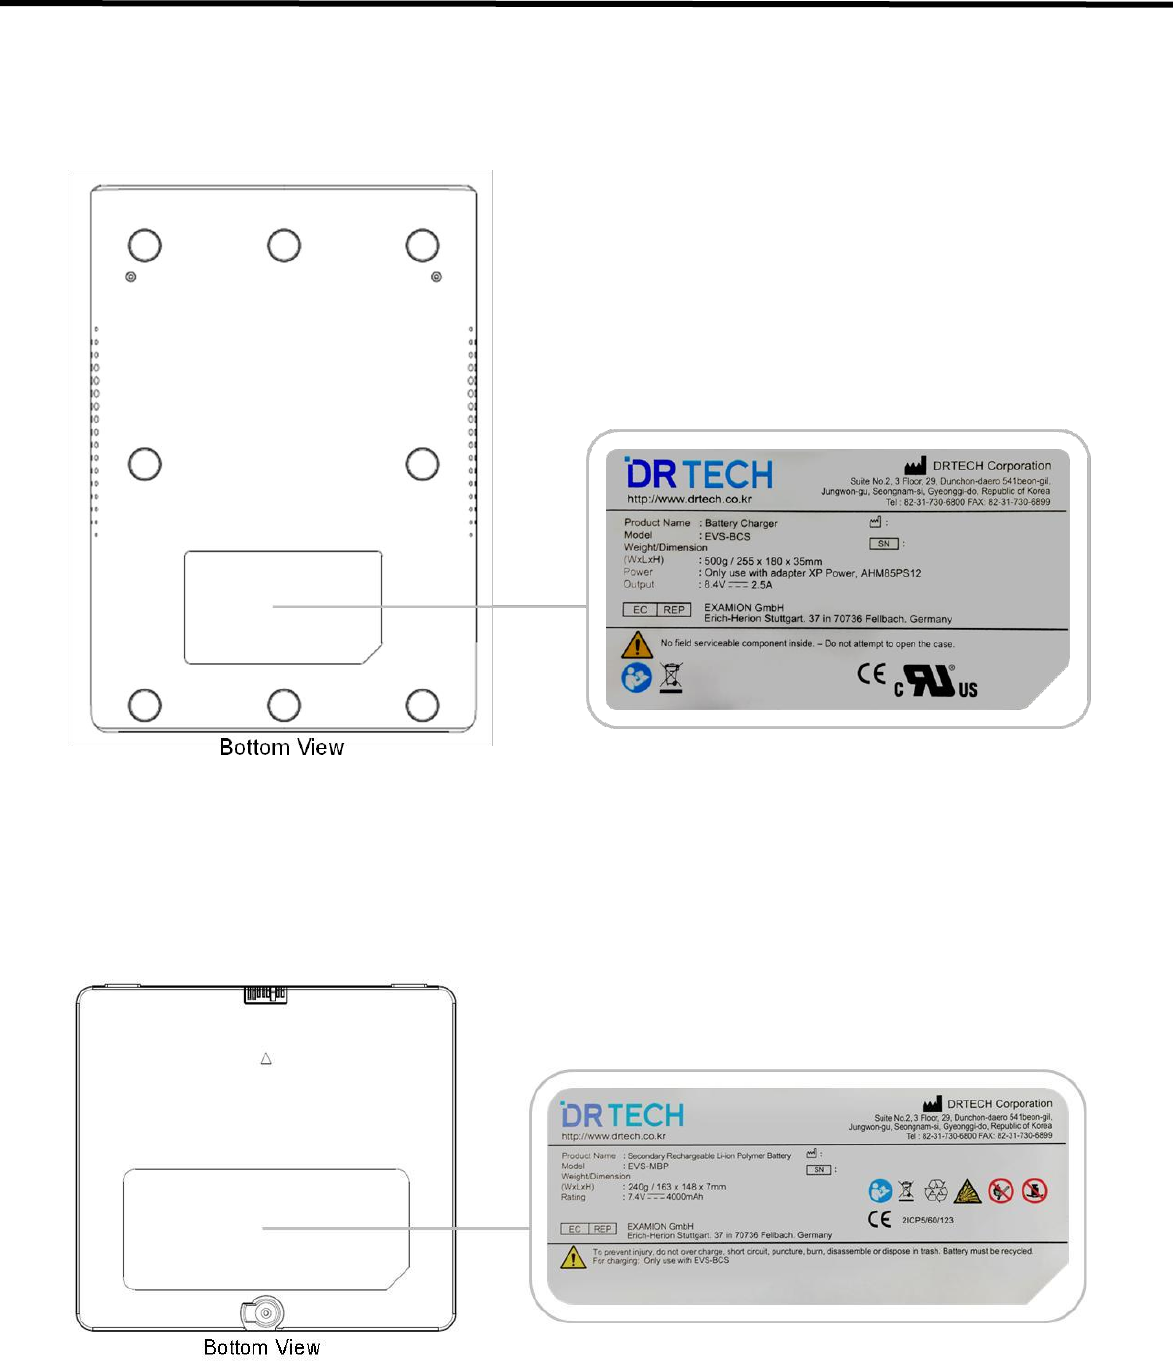 Drtech Evs2430wi Flat Panel Digital X Ray Detector User Manual Tel Tach Wiring Diagram Evs 2430wi Users 11 Regulatory Information